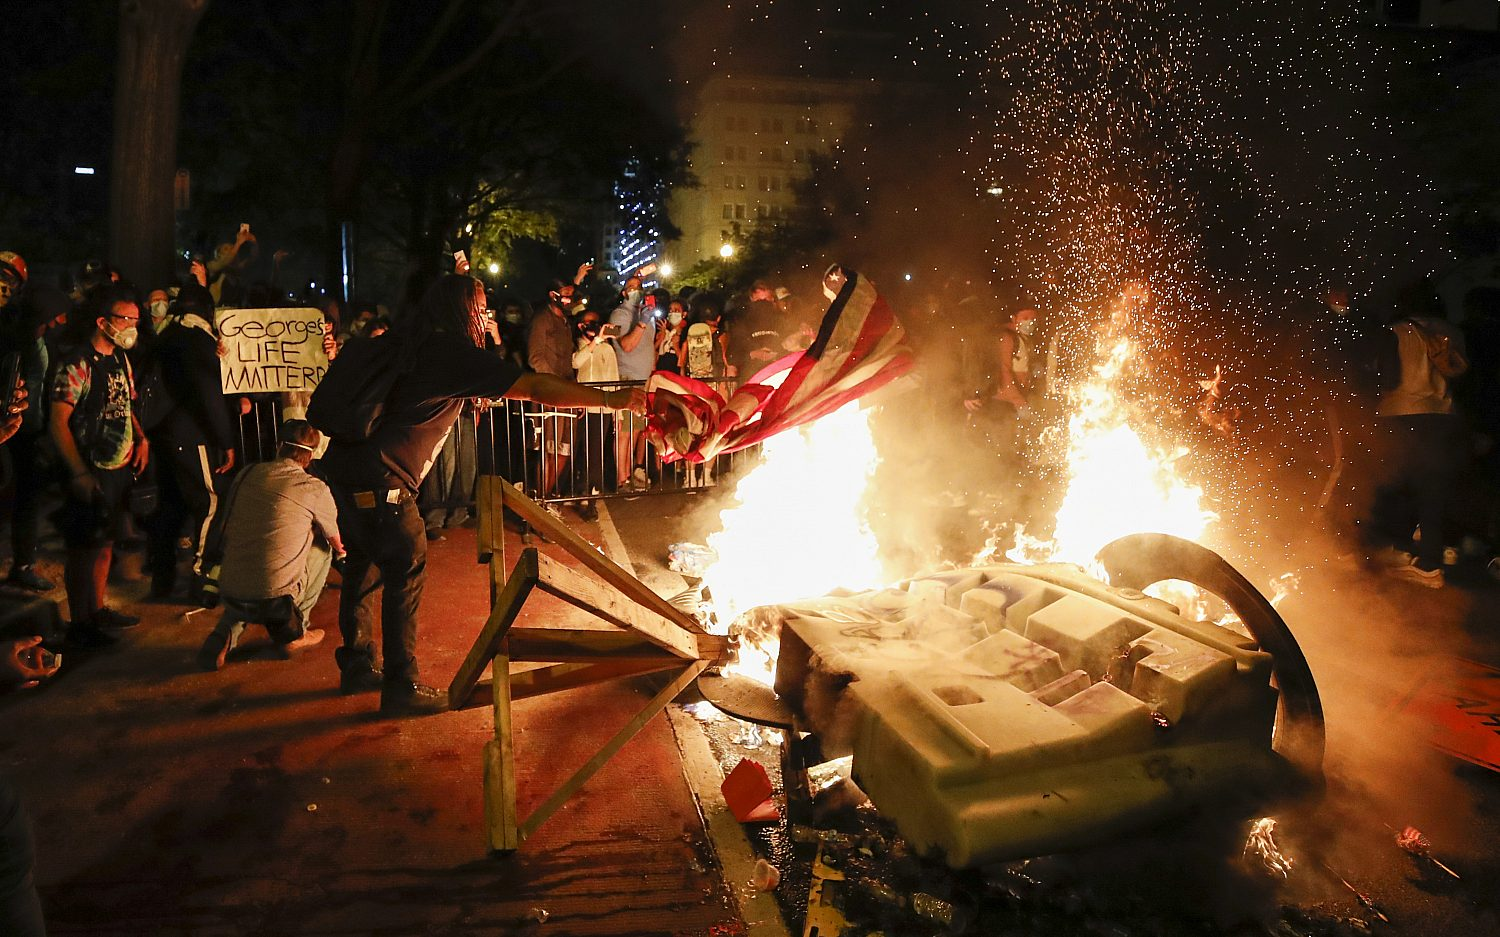 Protests continue across the U.S.